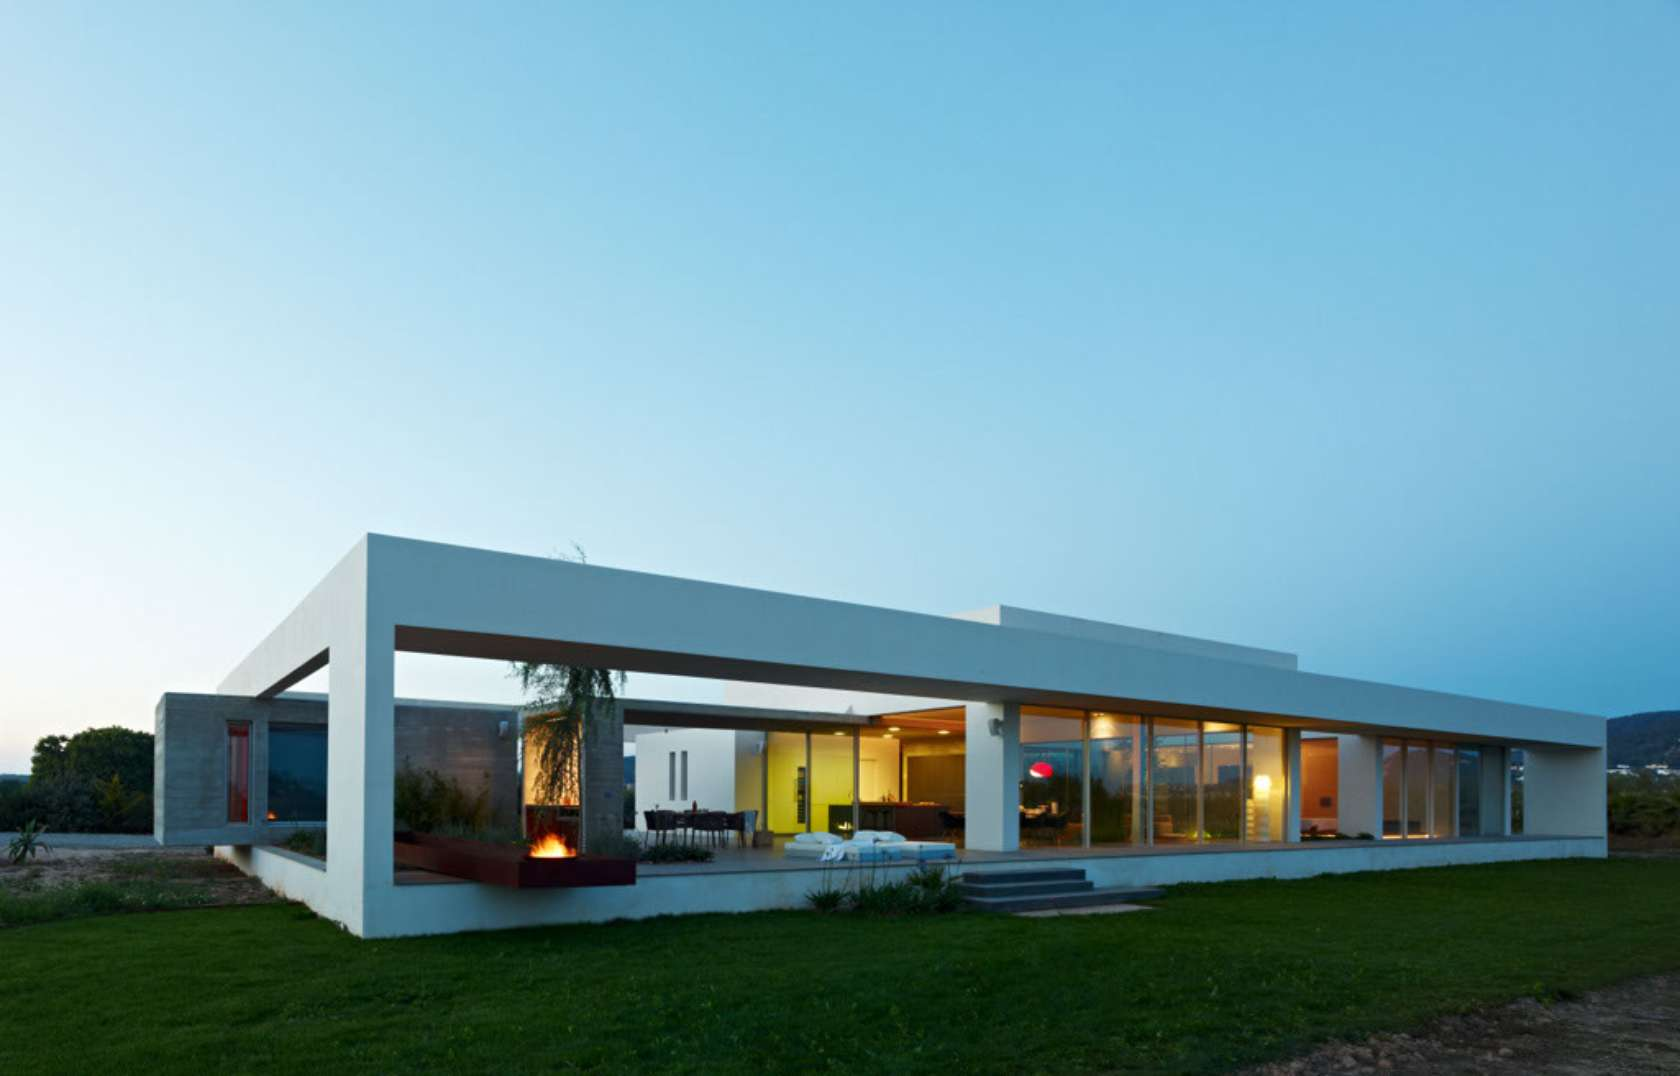 Simple and modern house architecture design with glass for Modern home design app